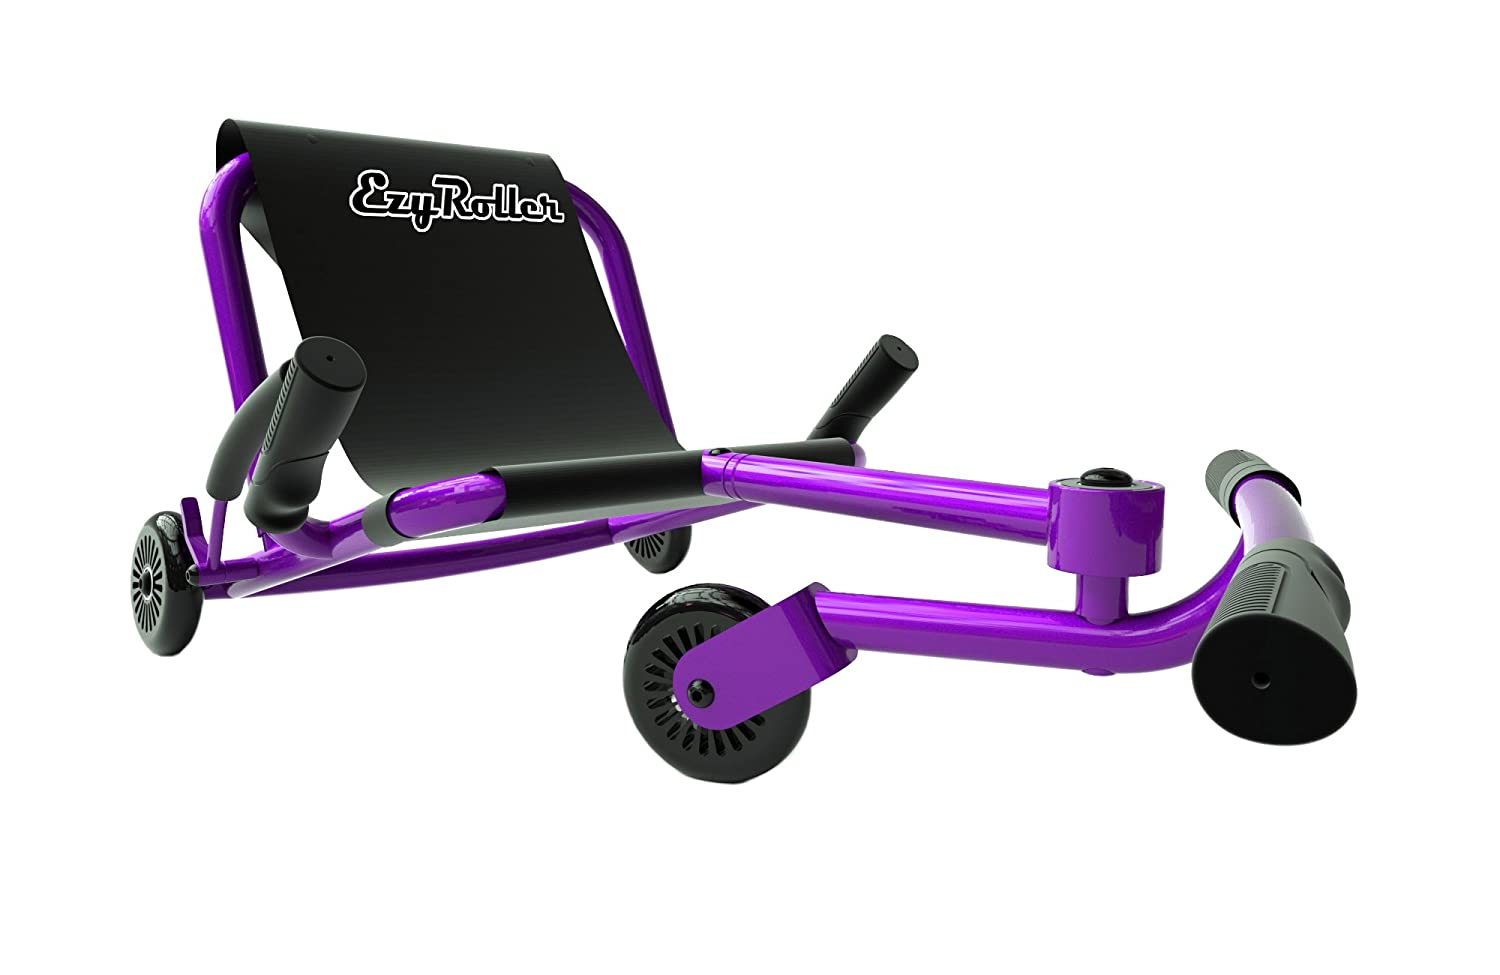 EzyRoller Classic - Purple - Ride On for Children Ages 4+